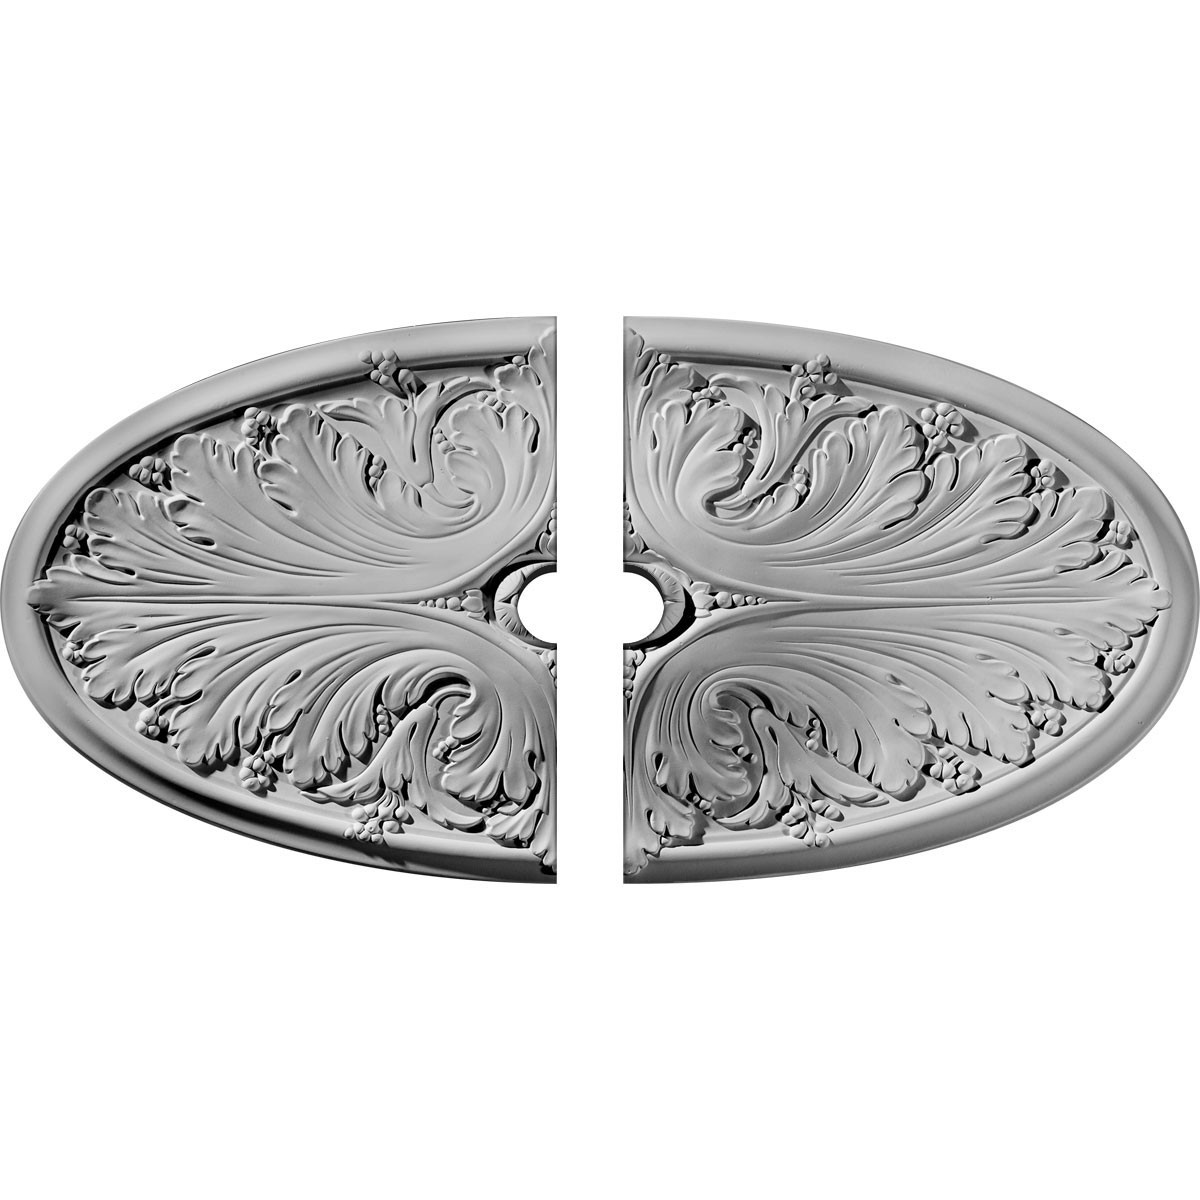 """EM-CM24X12MA2-03500 - 24 3/4""""W x 12 1/2""""H x 3 1/2""""ID x 1 3/4""""P Madrid Ceiling Medallion, Two Piece (Fits Canopies up to 3 1/2"""")"""